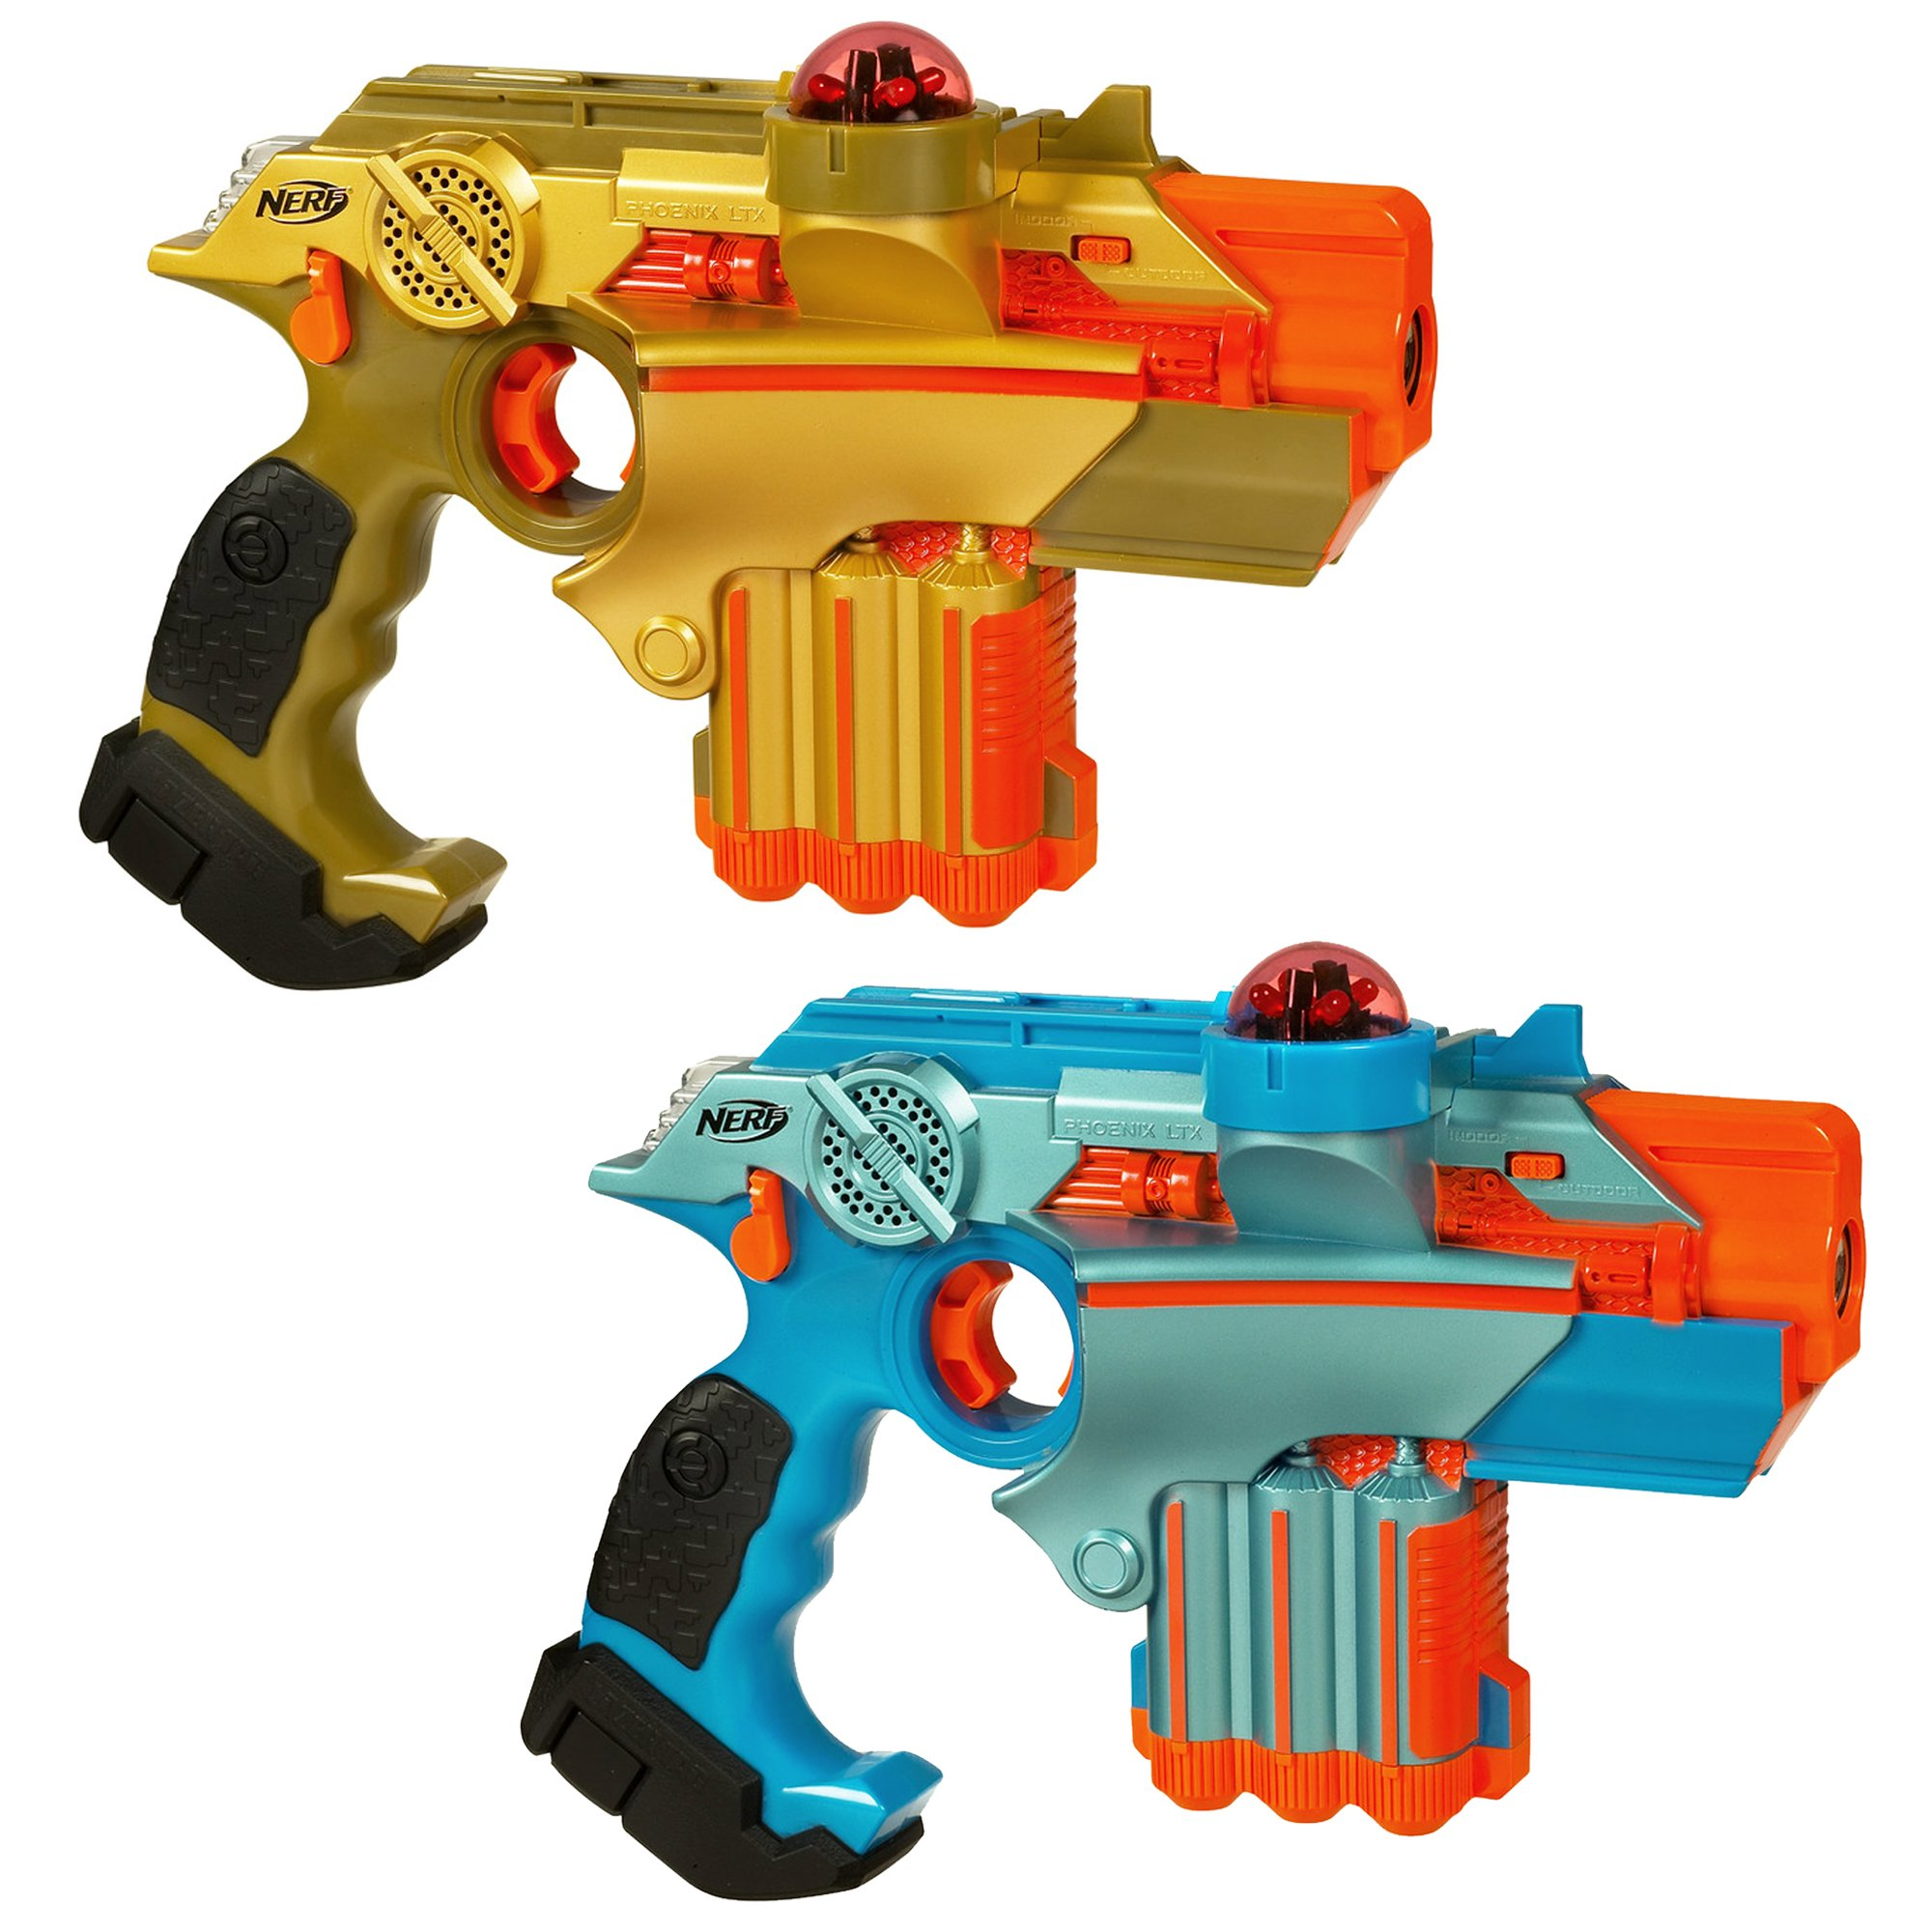 Nerf Official: Lazer Tag Phoenix LTX Tagger 2-pack - Fun Multiplayer Laser Tag Game for Kids & Adults, Ages 8 & Up (Amazon Exclusive)